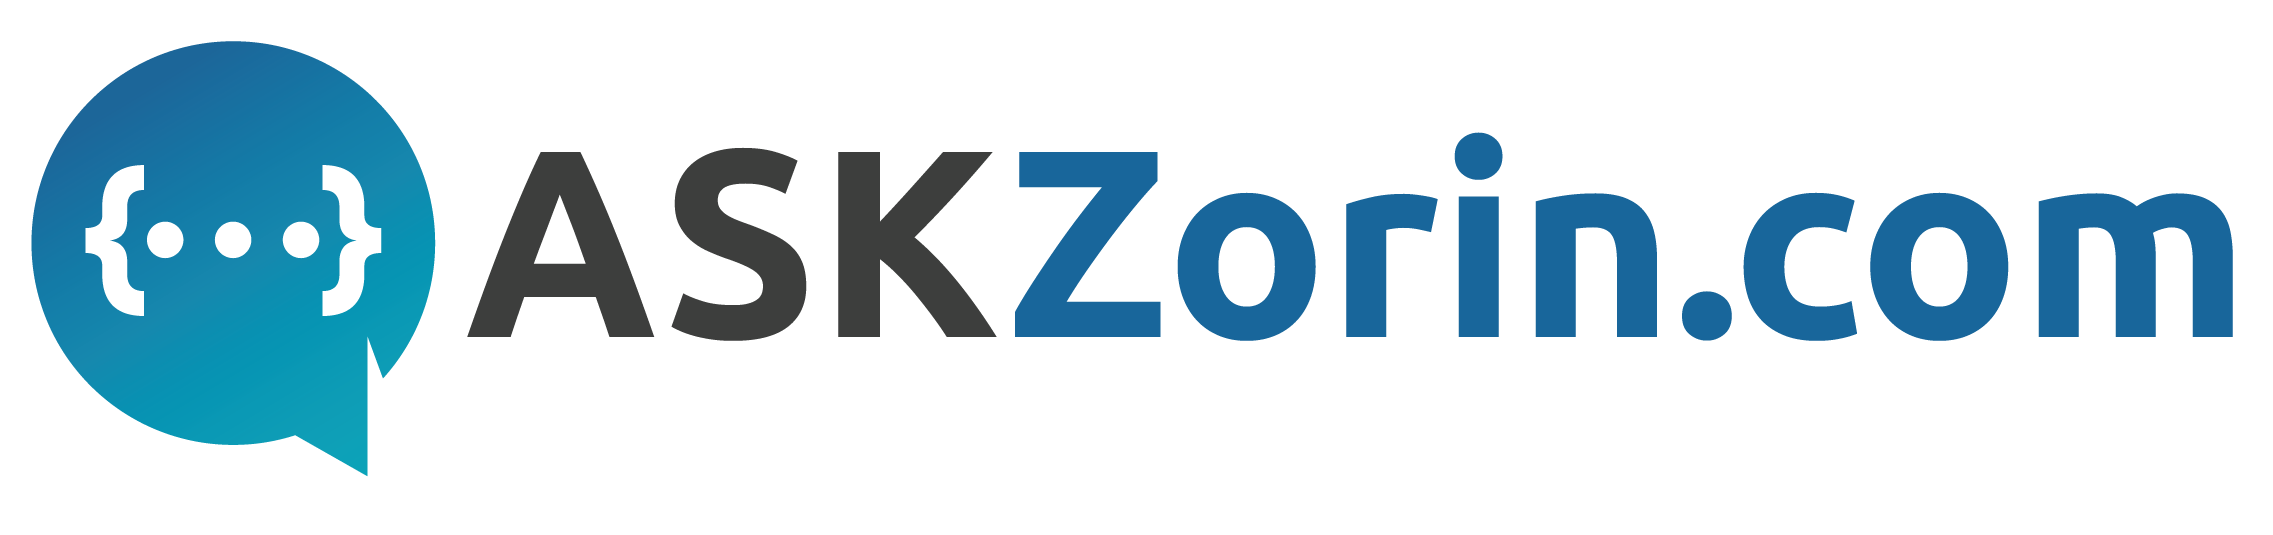 Ask Zorin - AskZorin.com - Community Forum